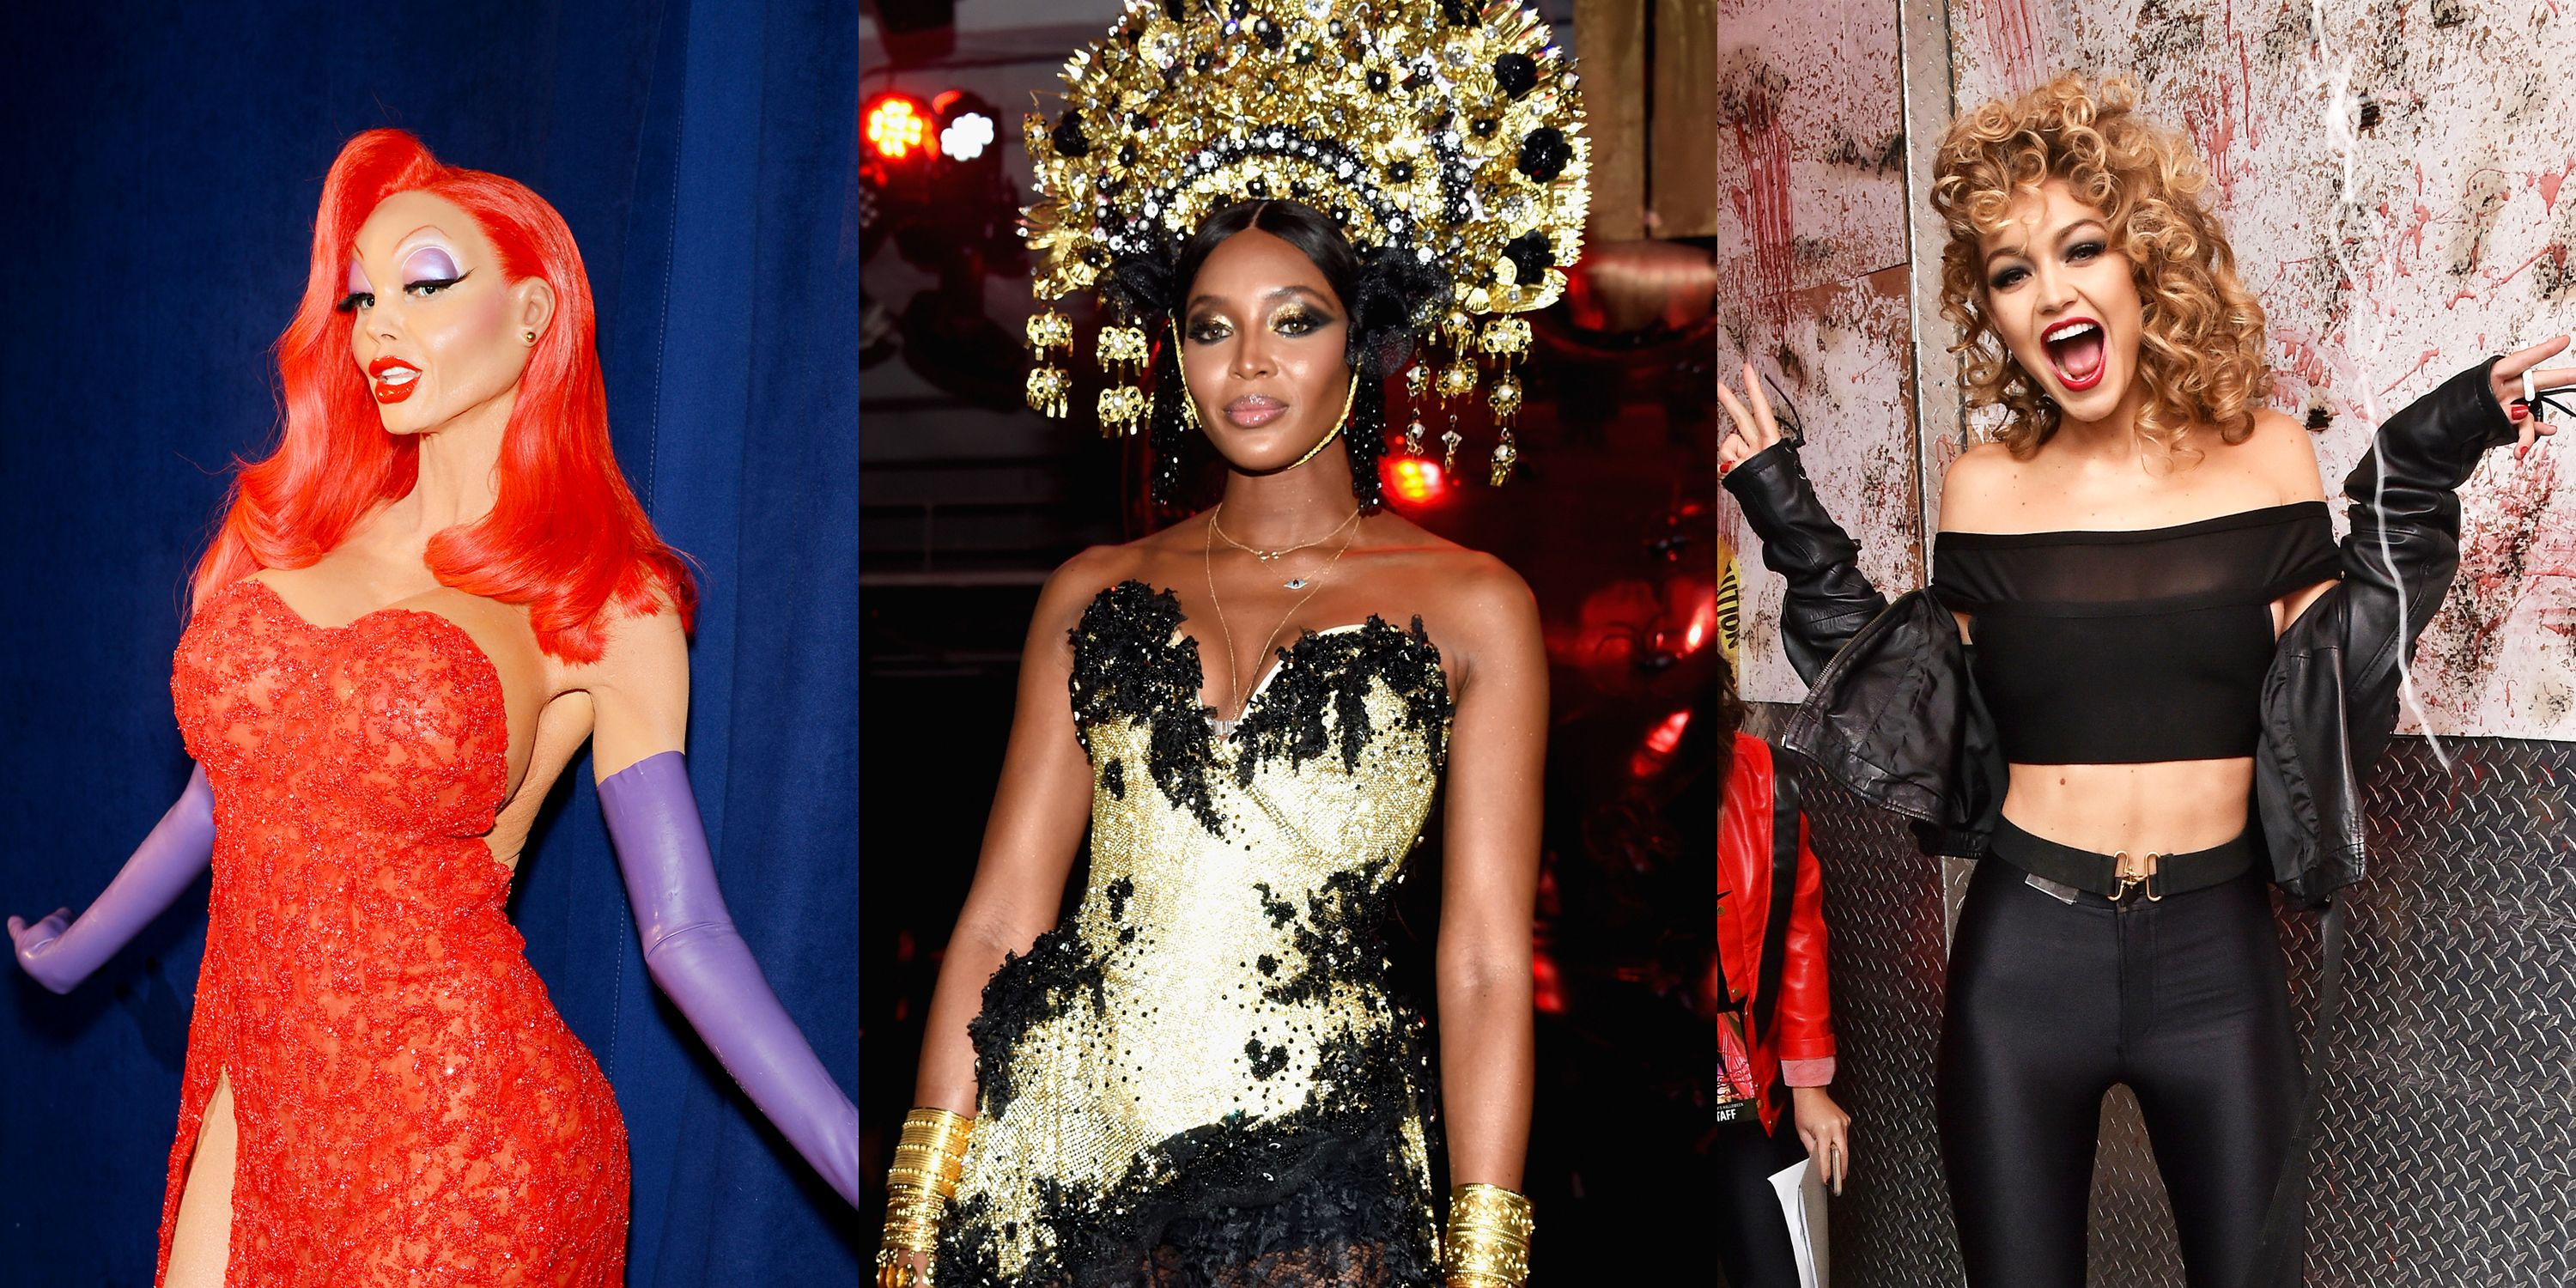 20 Truly Amazing Celebrity Halloween Costumes